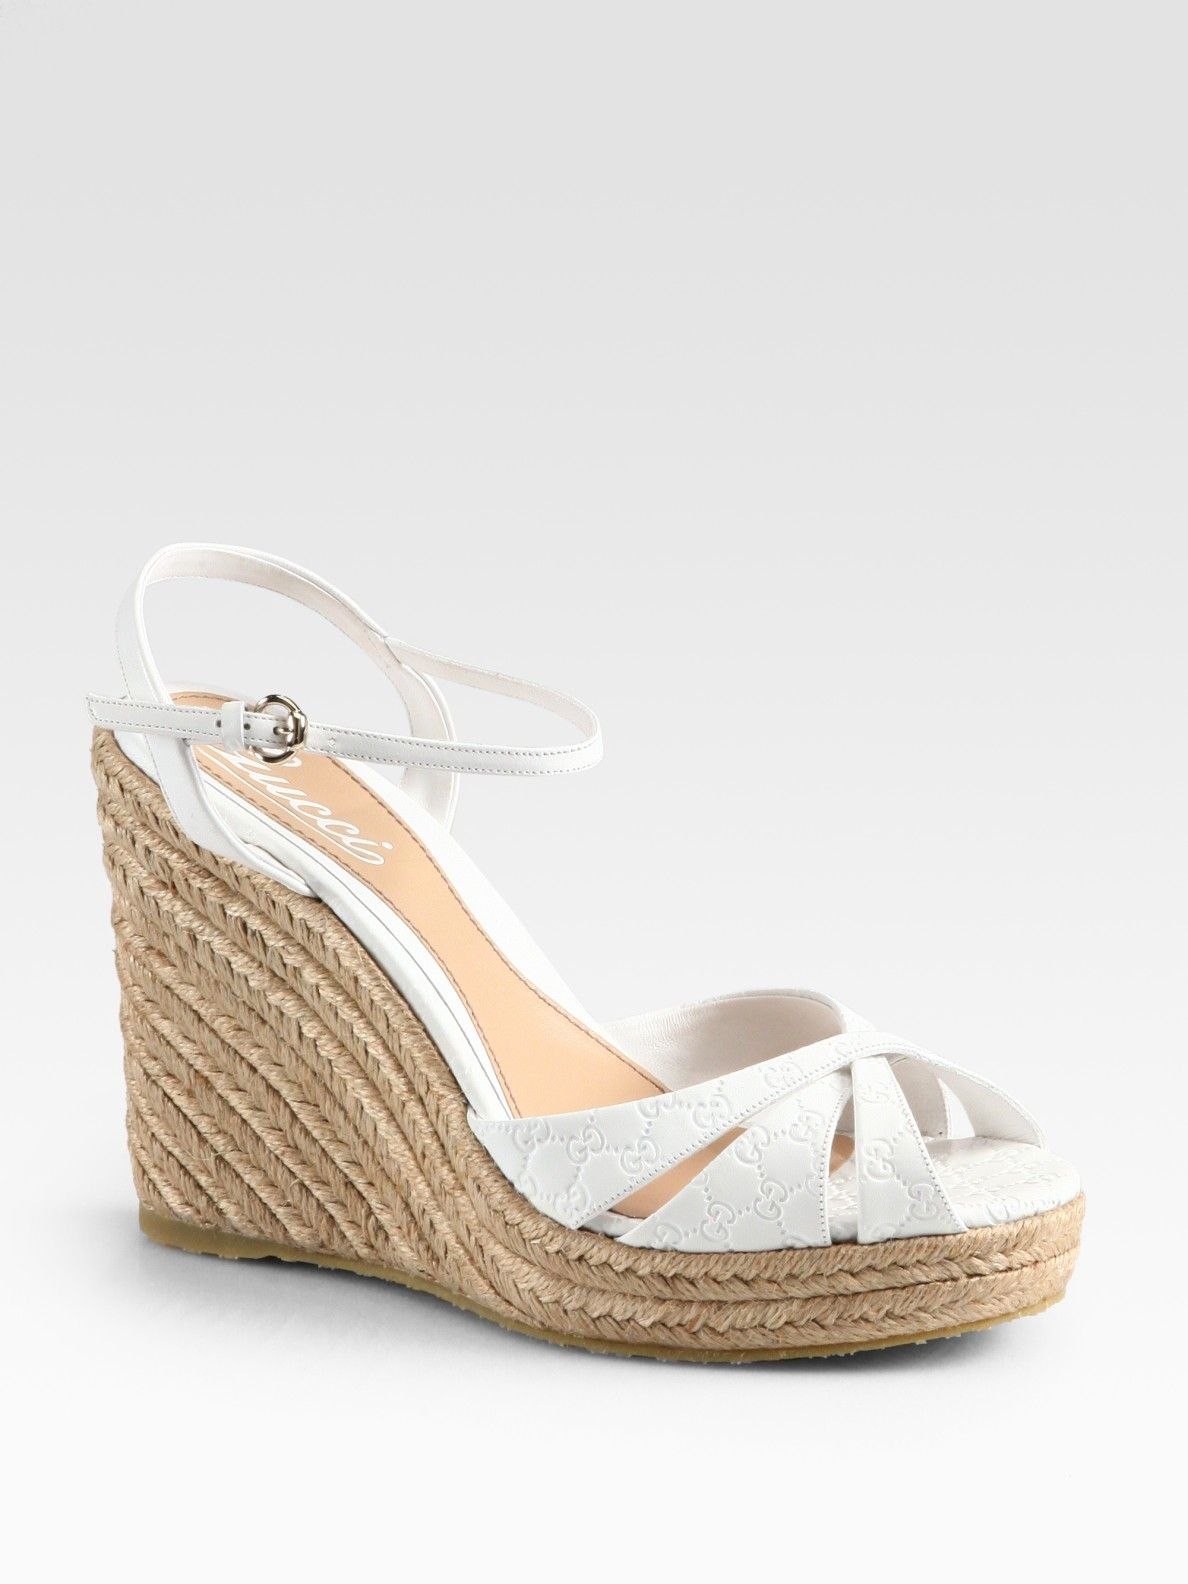 6ba874a4537e6a Gucci Penelope Gg Leather Espadrille Wedges in White